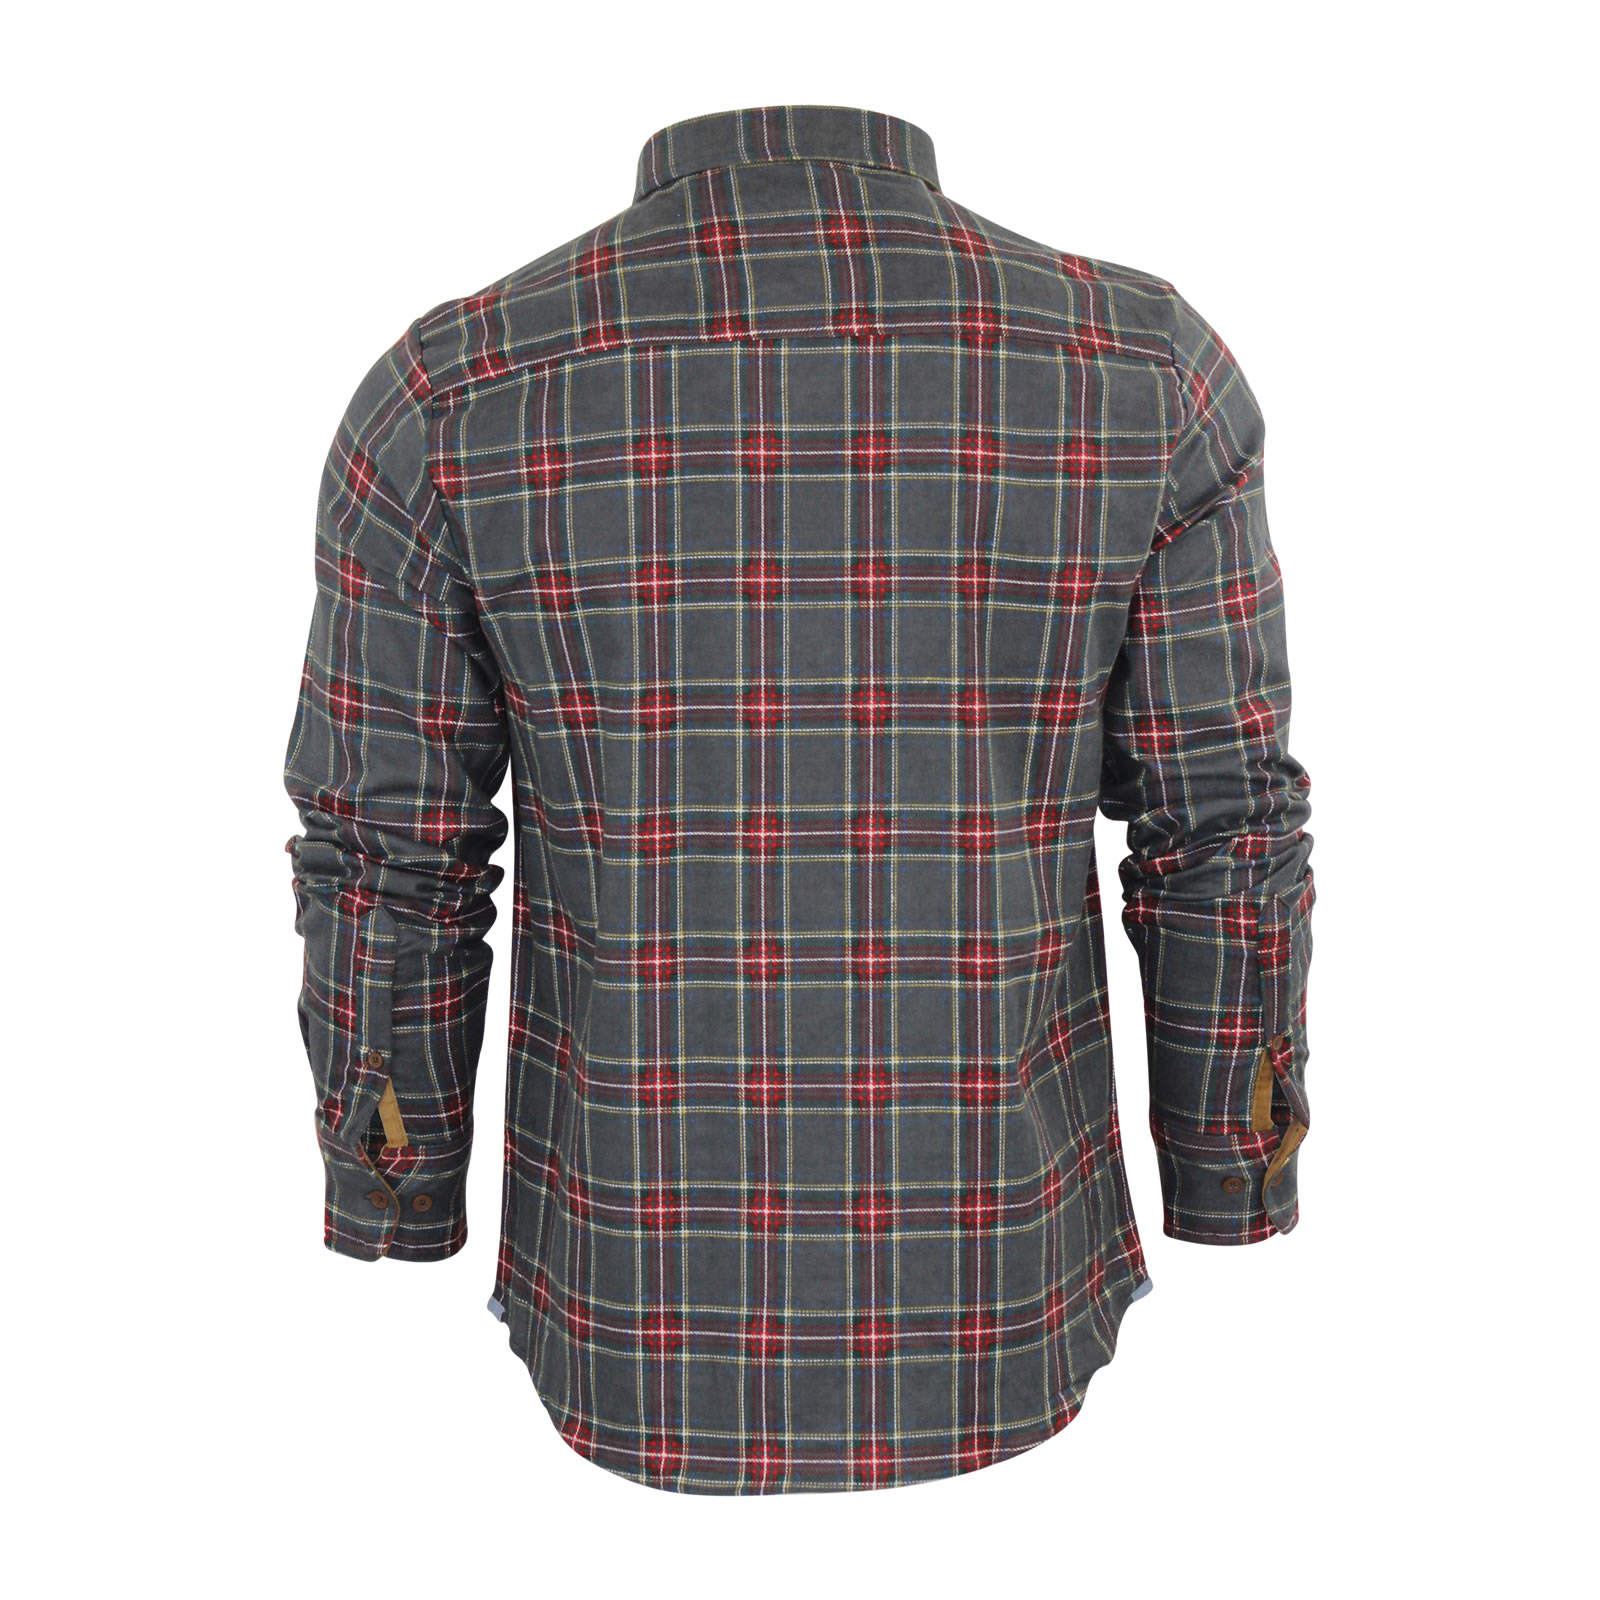 Mens-Check-Shirt-Brave-Soul-Edvard-Flannel-Brushed-Cotton-Long-Sleeve-Casual-Top thumbnail 6